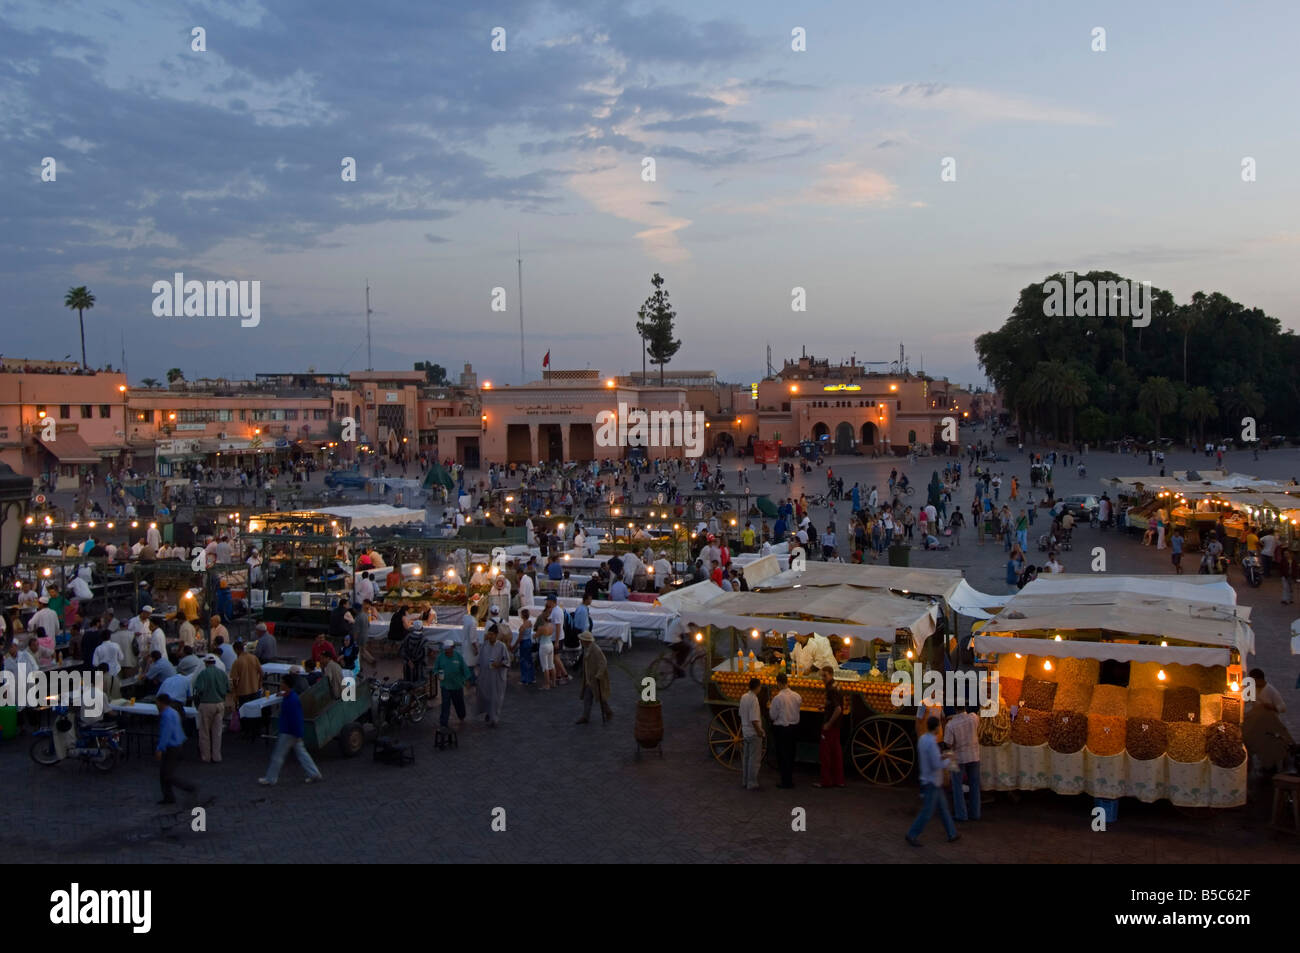 A wide aerial view of the Djemaa El Fna in Marrakesh and open air 'restaurants' as it starts to fill up - Stock Image